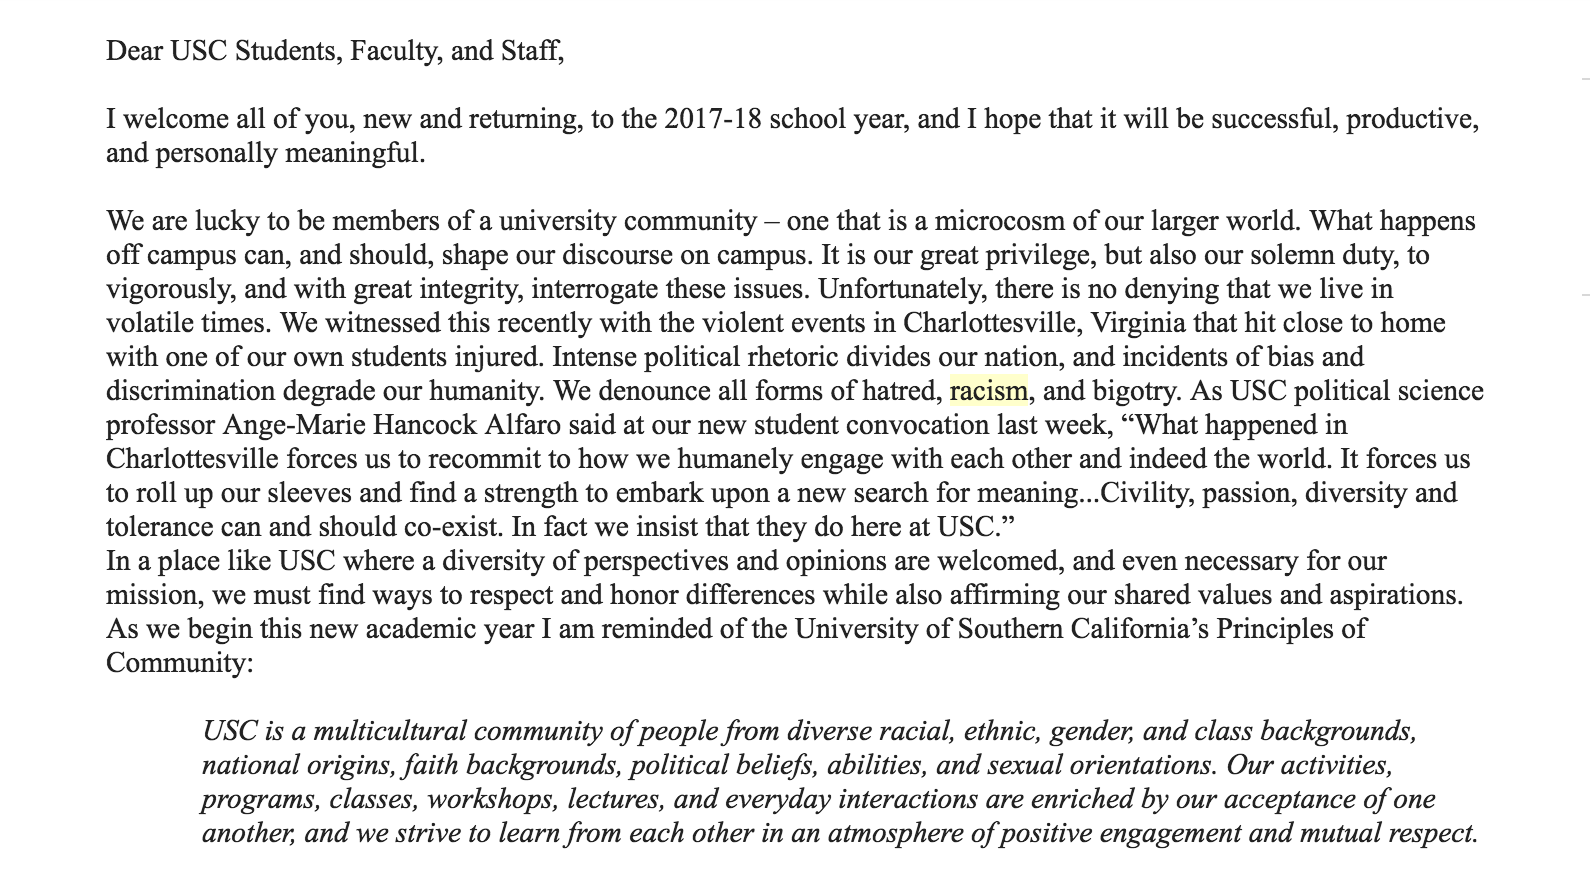 Provost Quick addresses racism, Charlottesville in letter to USC